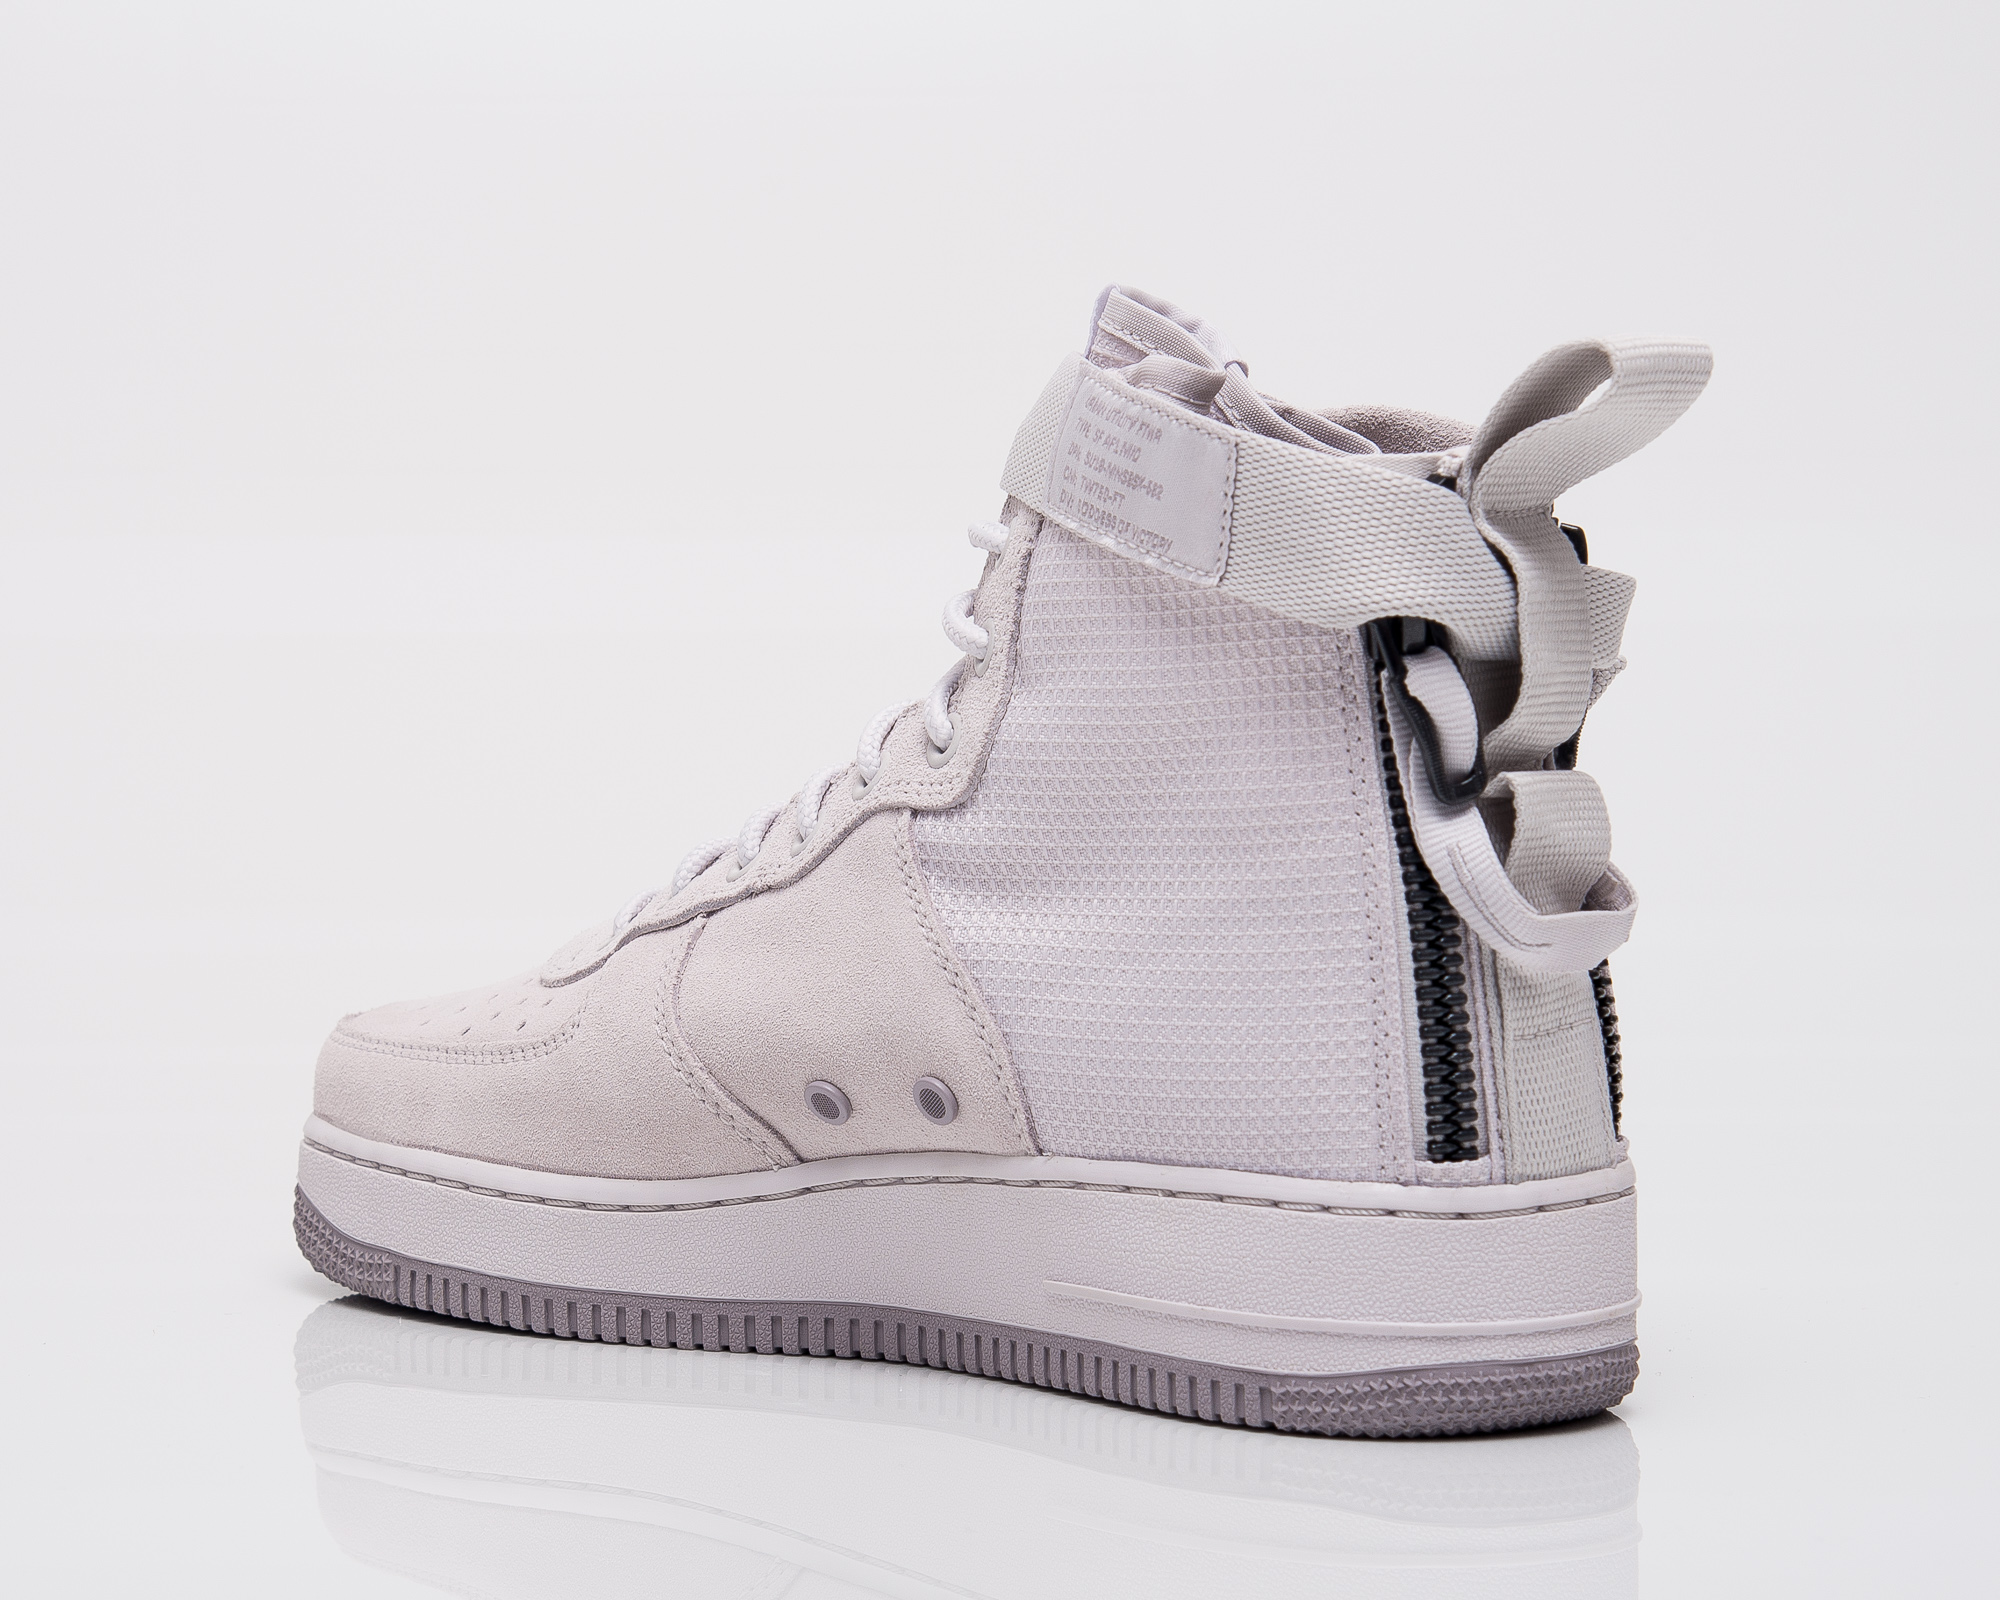 Nike Sf Air Force 1 Mid Suede Shoes Casual Sporting